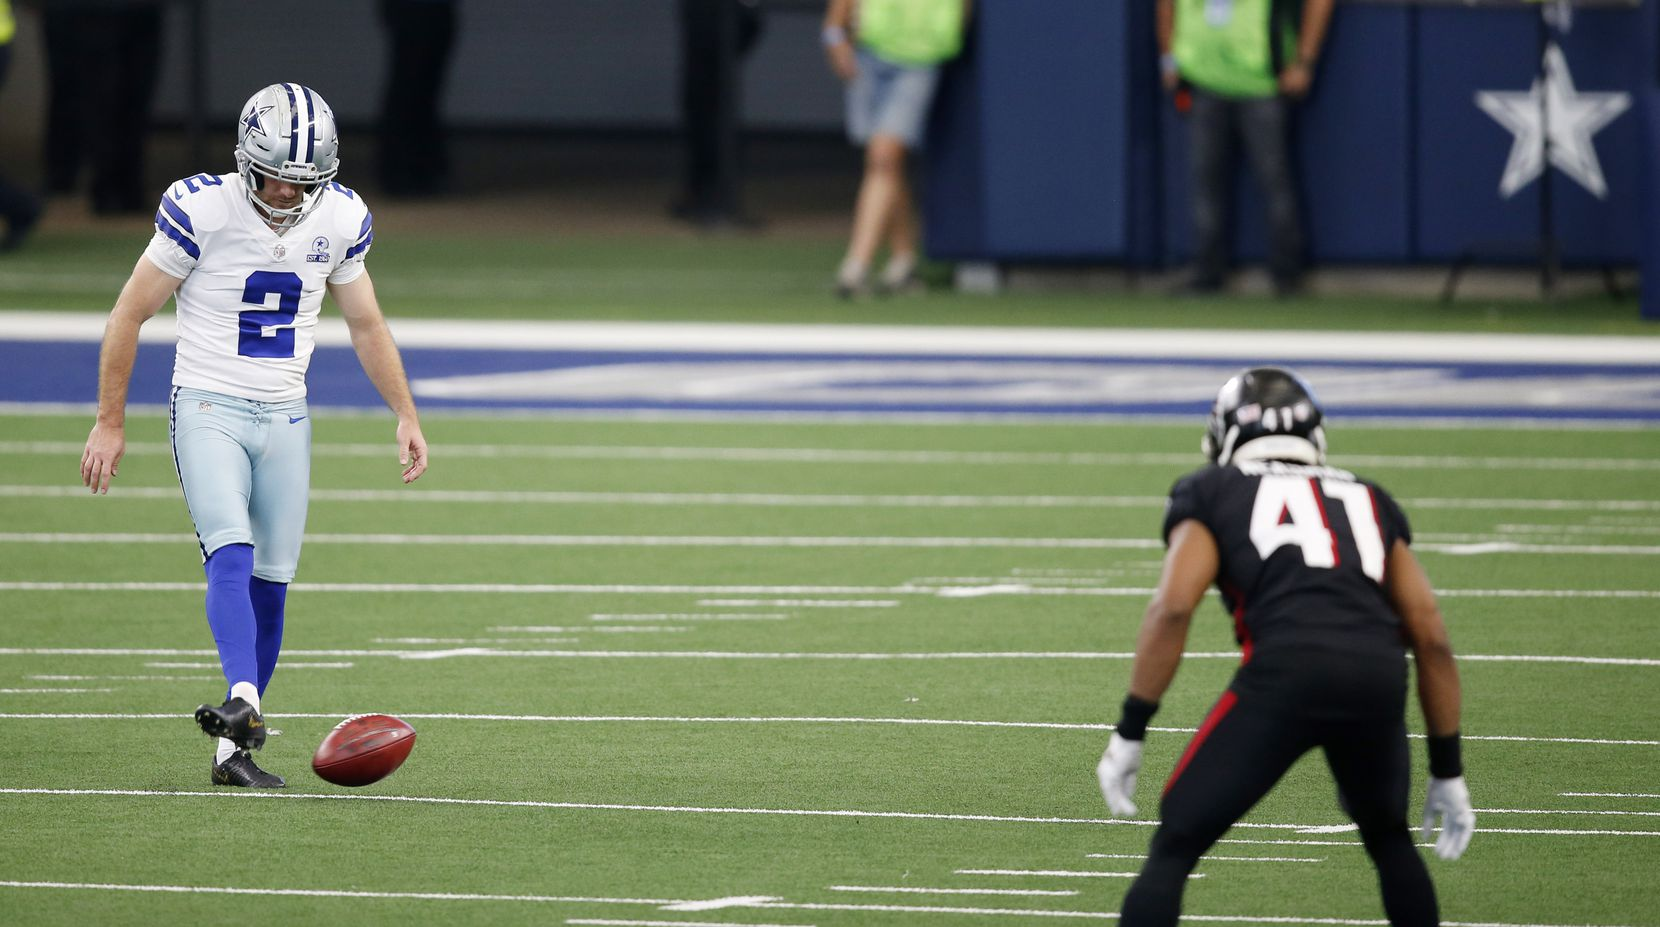 Dallas Cowboys kicker Greg Zuerlein (2) attempts an onside kick against the Atlanta Falcons during the fourth quarter of play at AT&T Stadium in Arlington, Texas on Sunday, September 20, 2020.